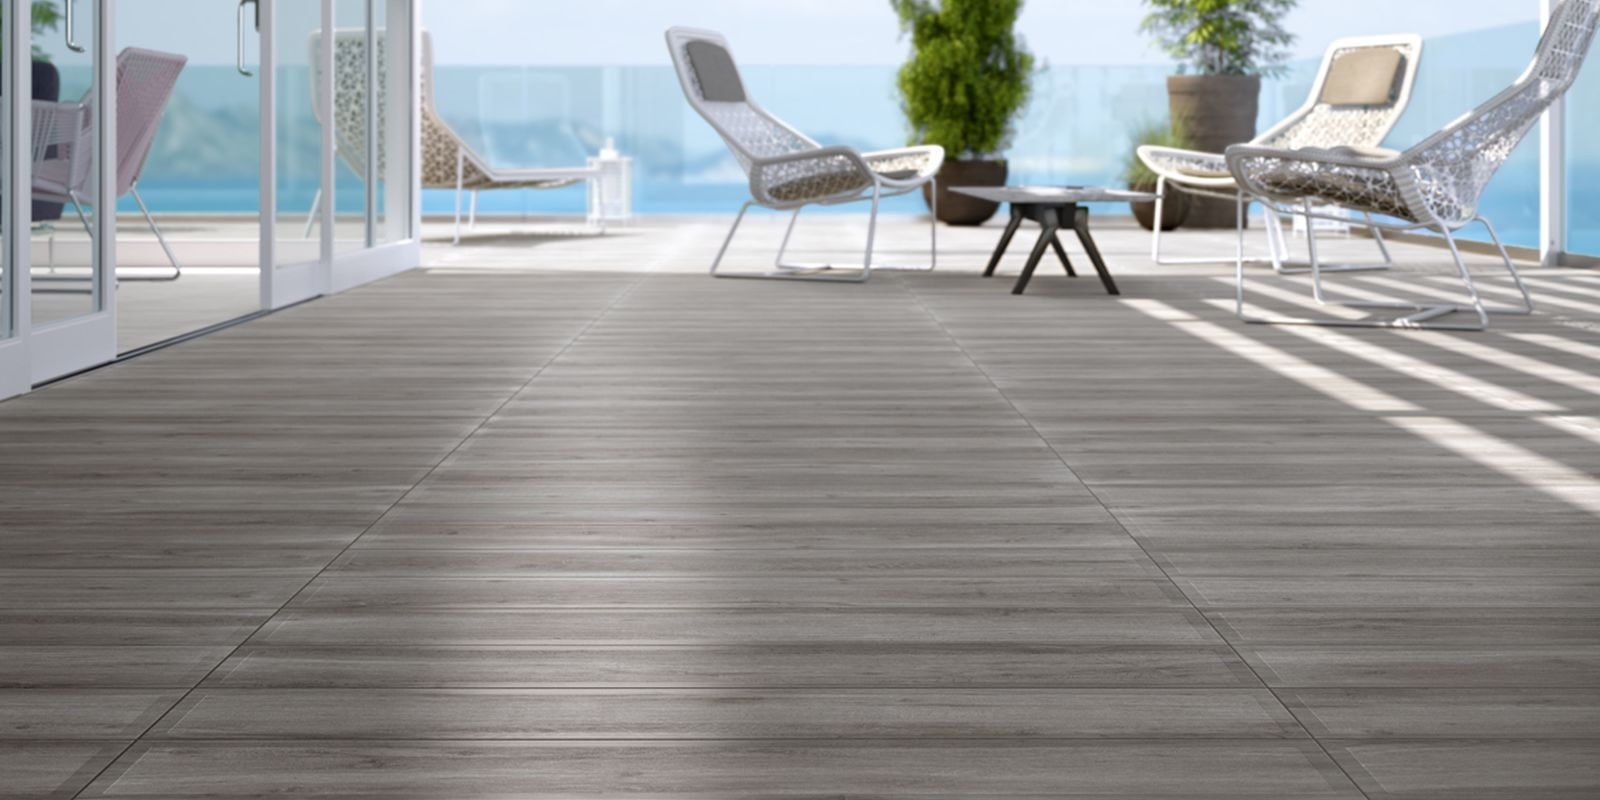 Indoor tile outdoor floor for floors wood cooperativa indoor tile outdoor floor for floors wood cooperativa ceramica dimola dailygadgetfo Images